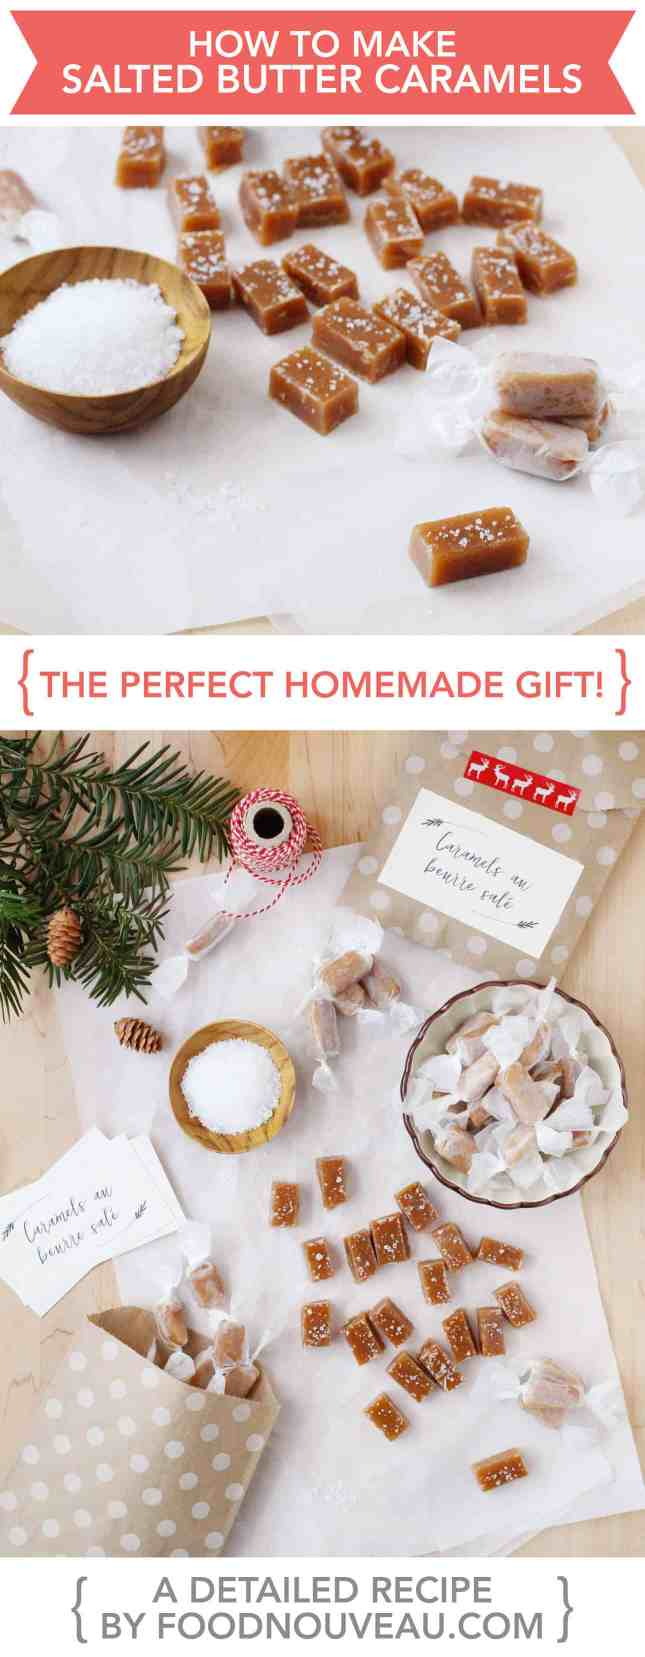 How to Make Salted Butter Caramels, the perfect homemade gift! // FoodNouveau.com